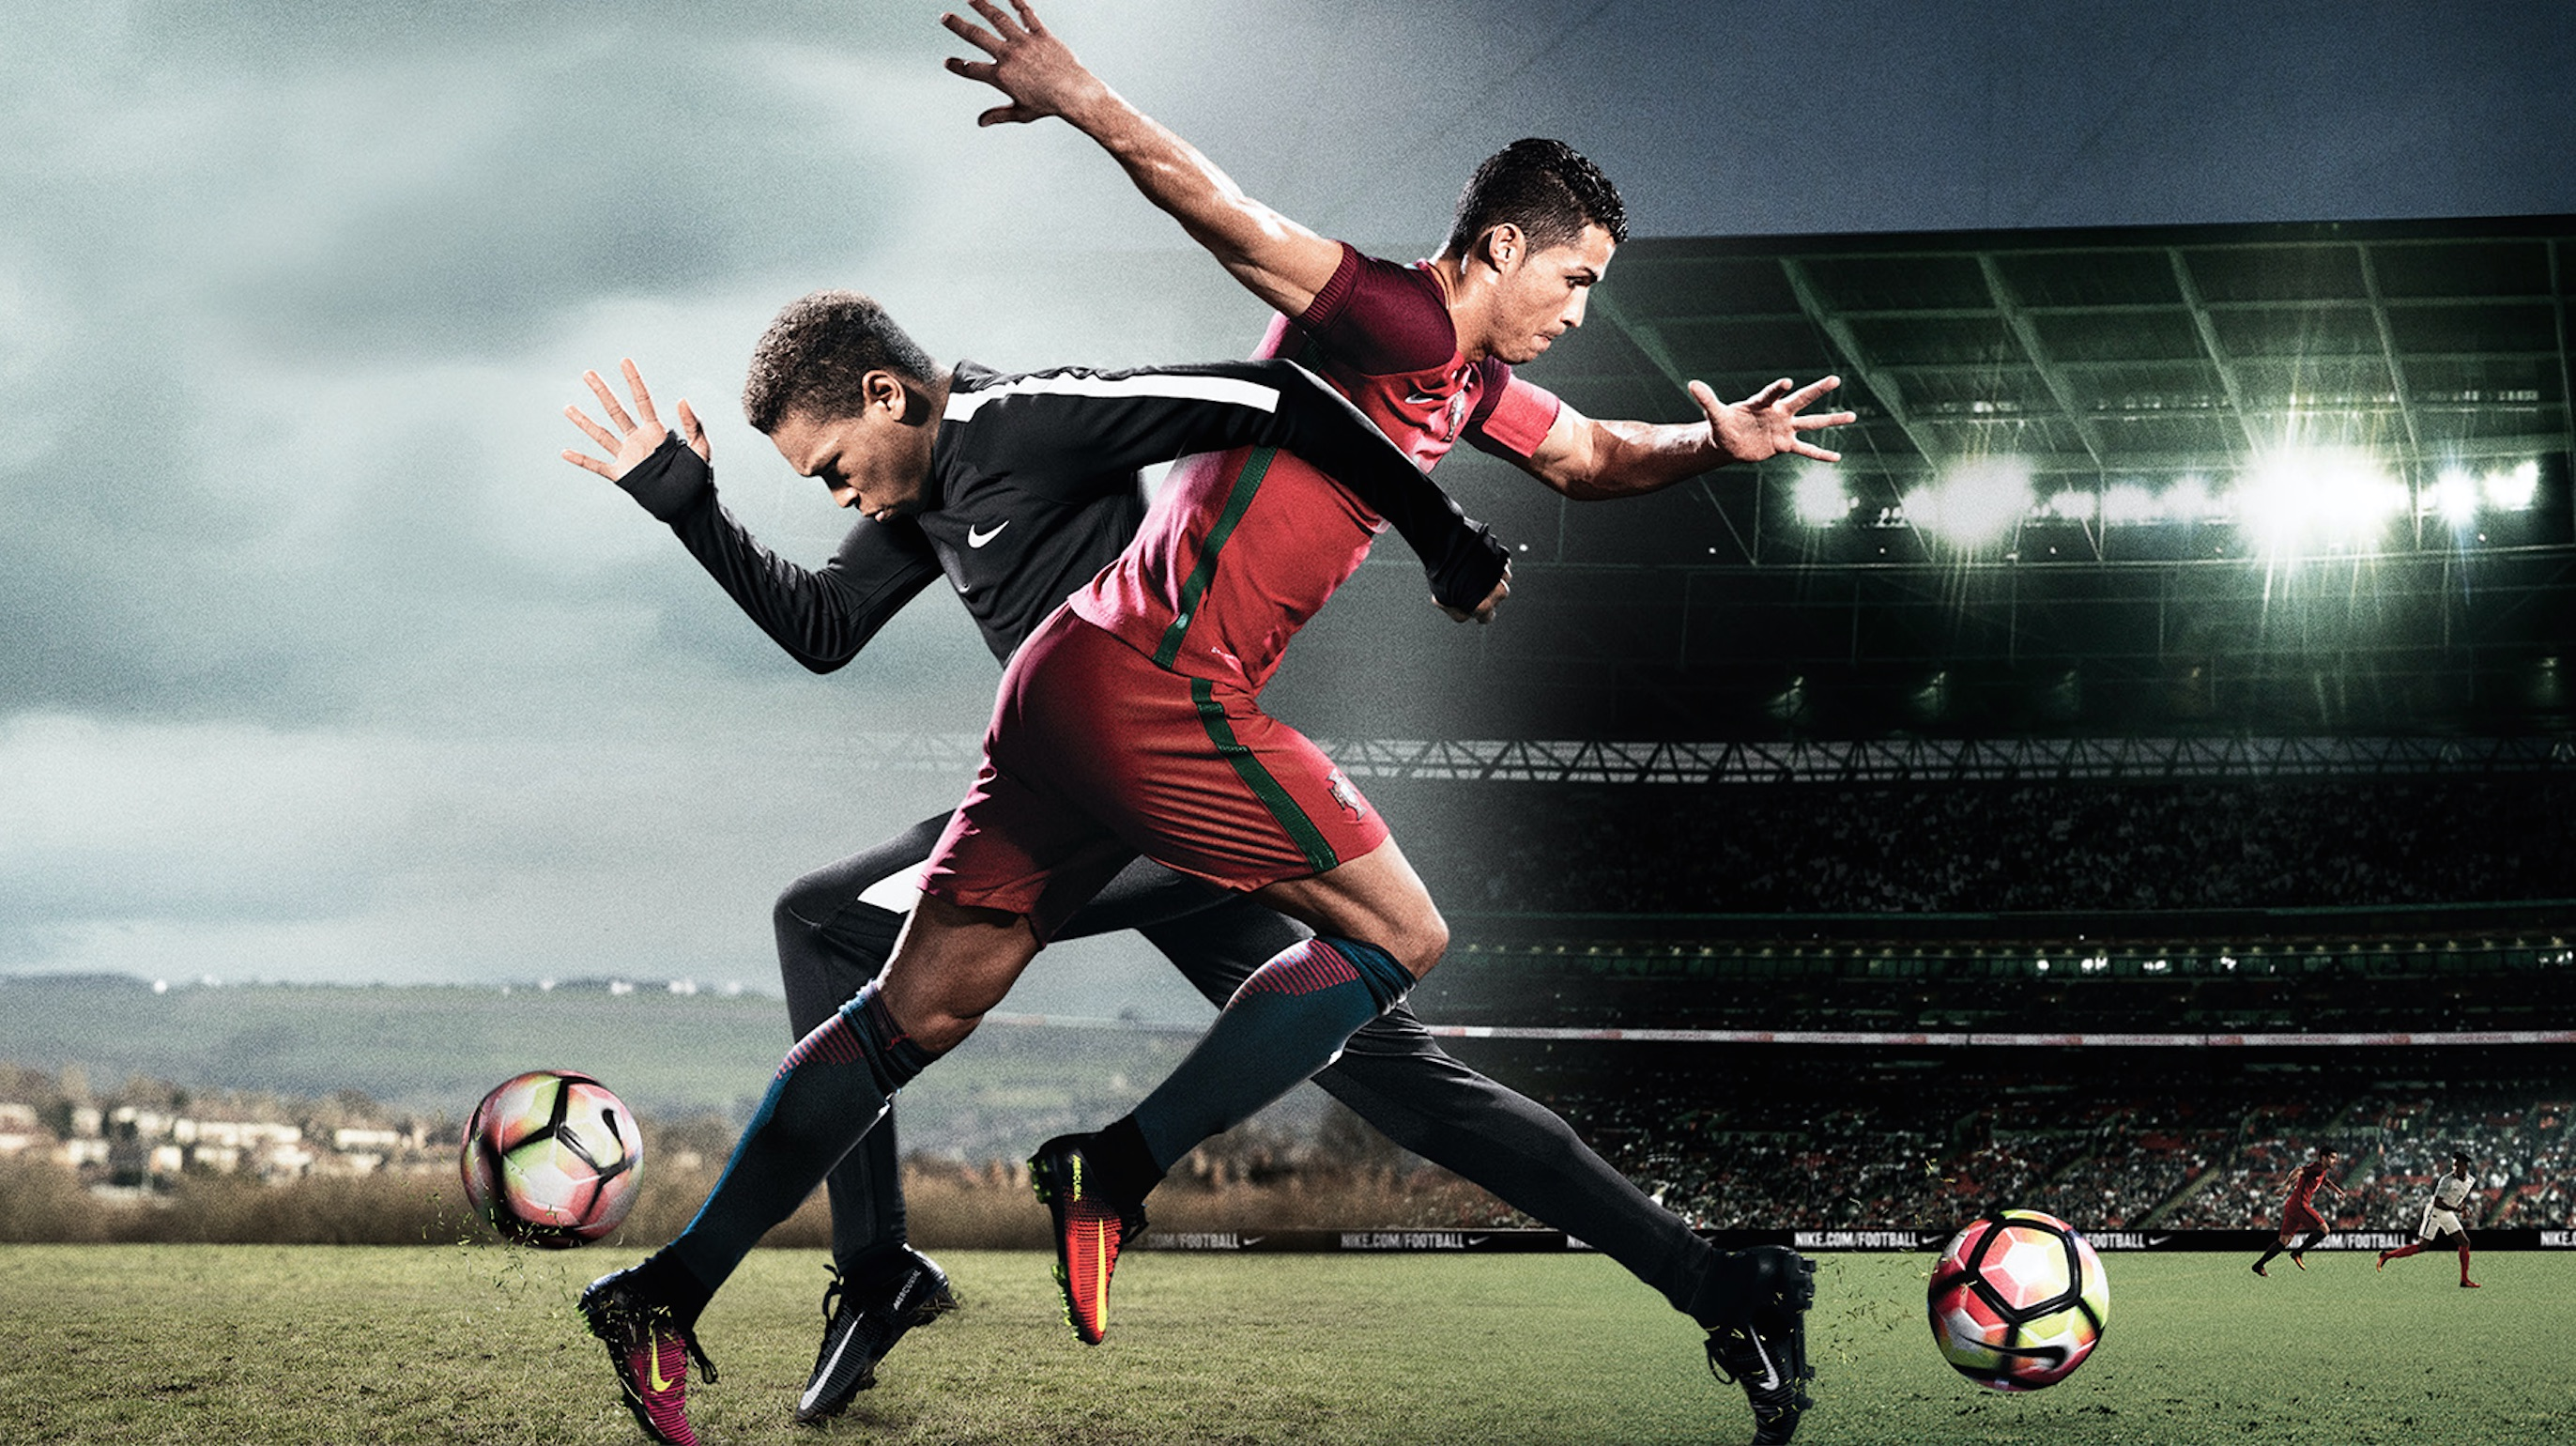 Nike – The Switch